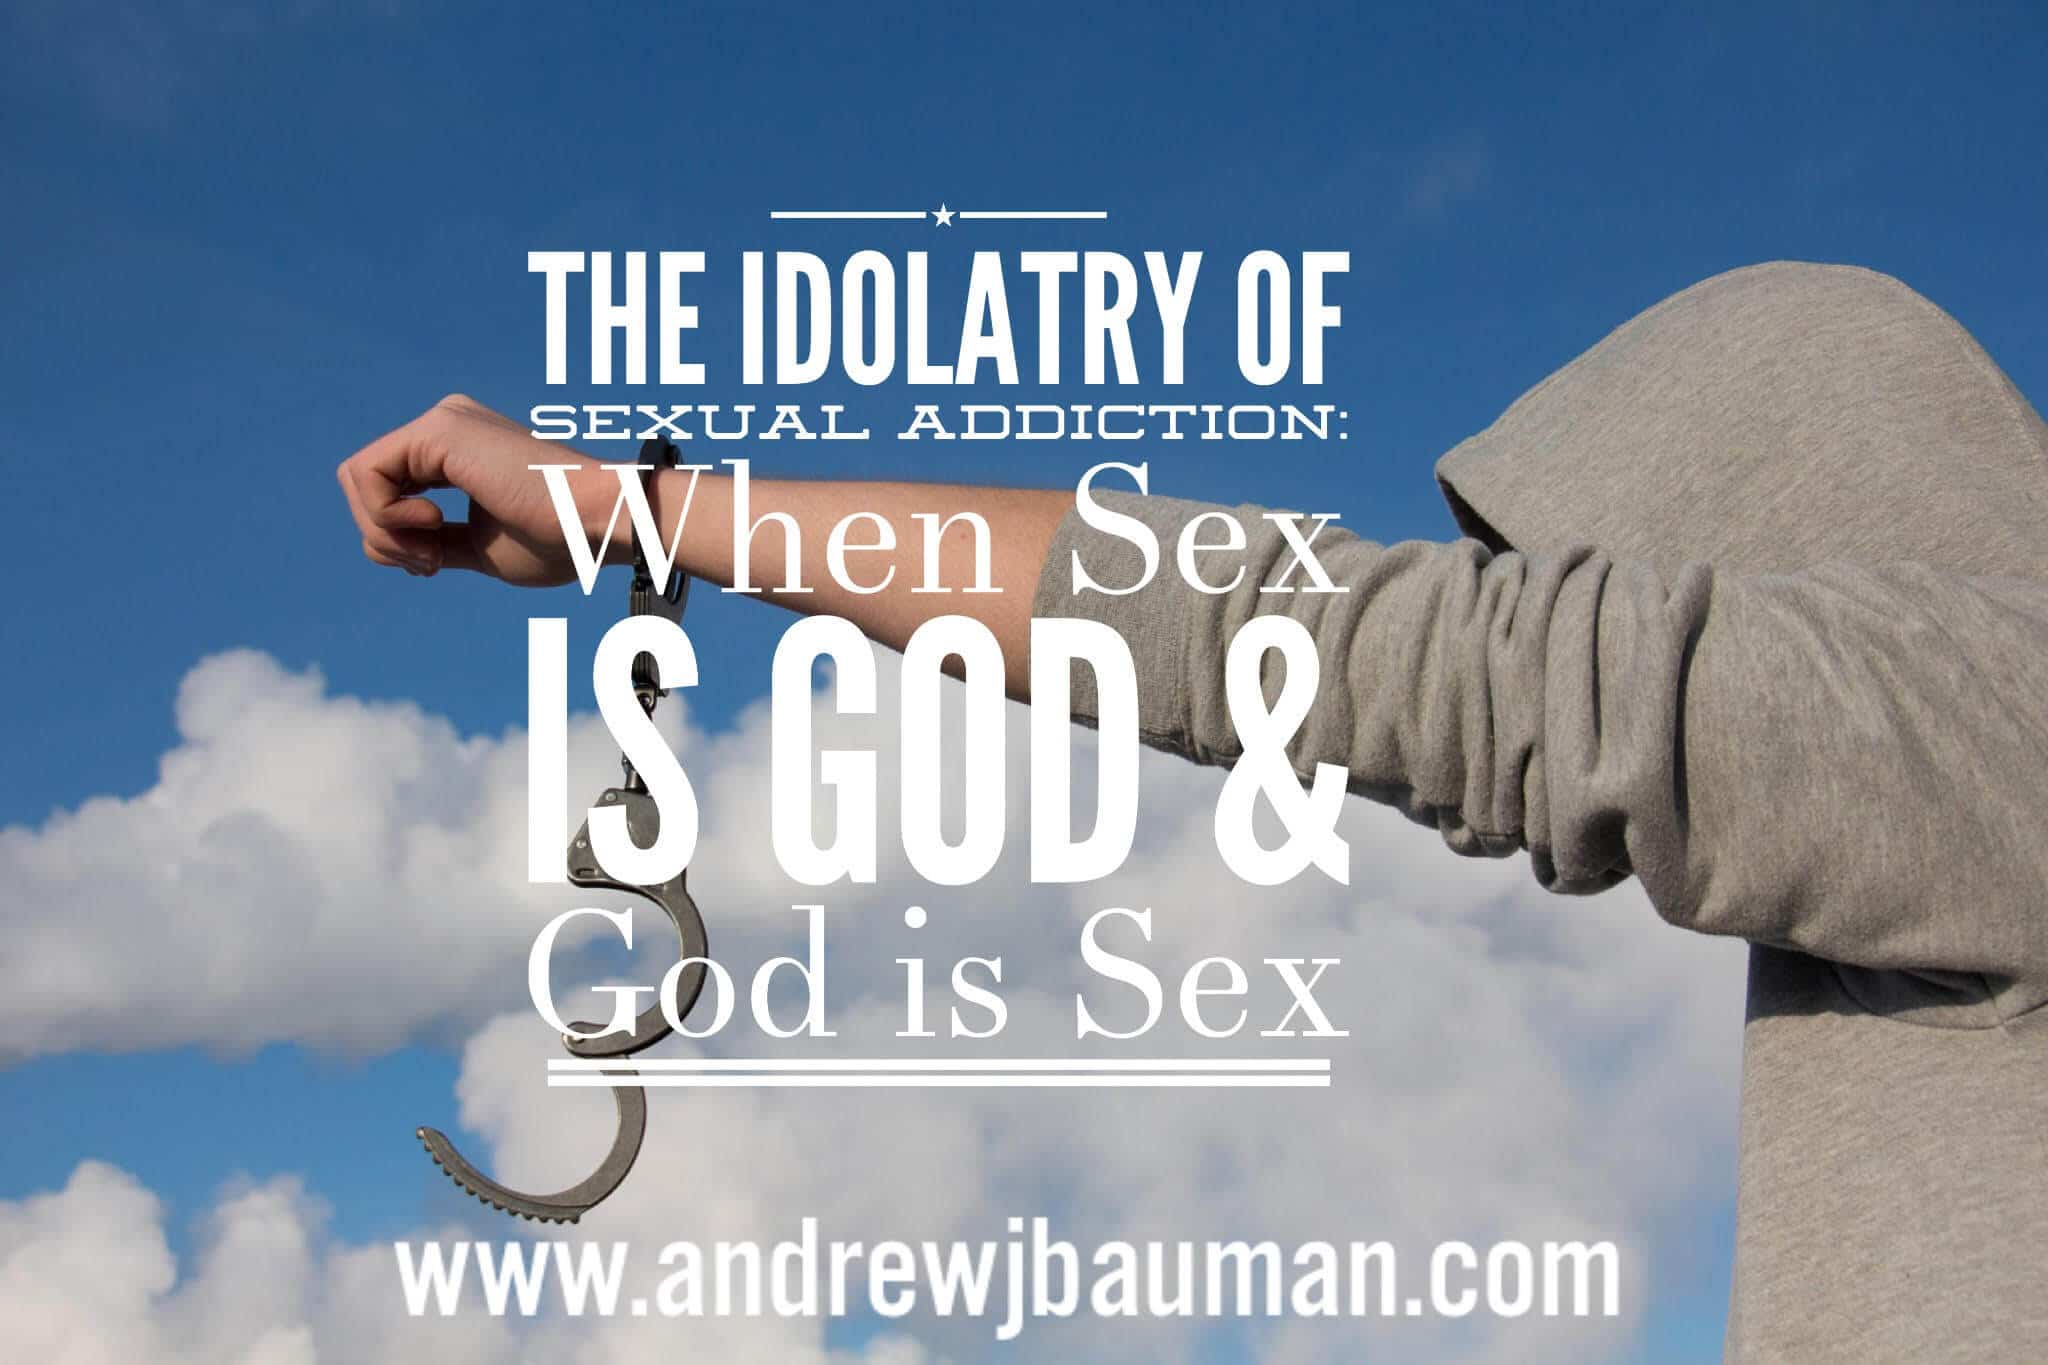 The Idolatry of Sexual Addiction: When Sex is God & God is Sex